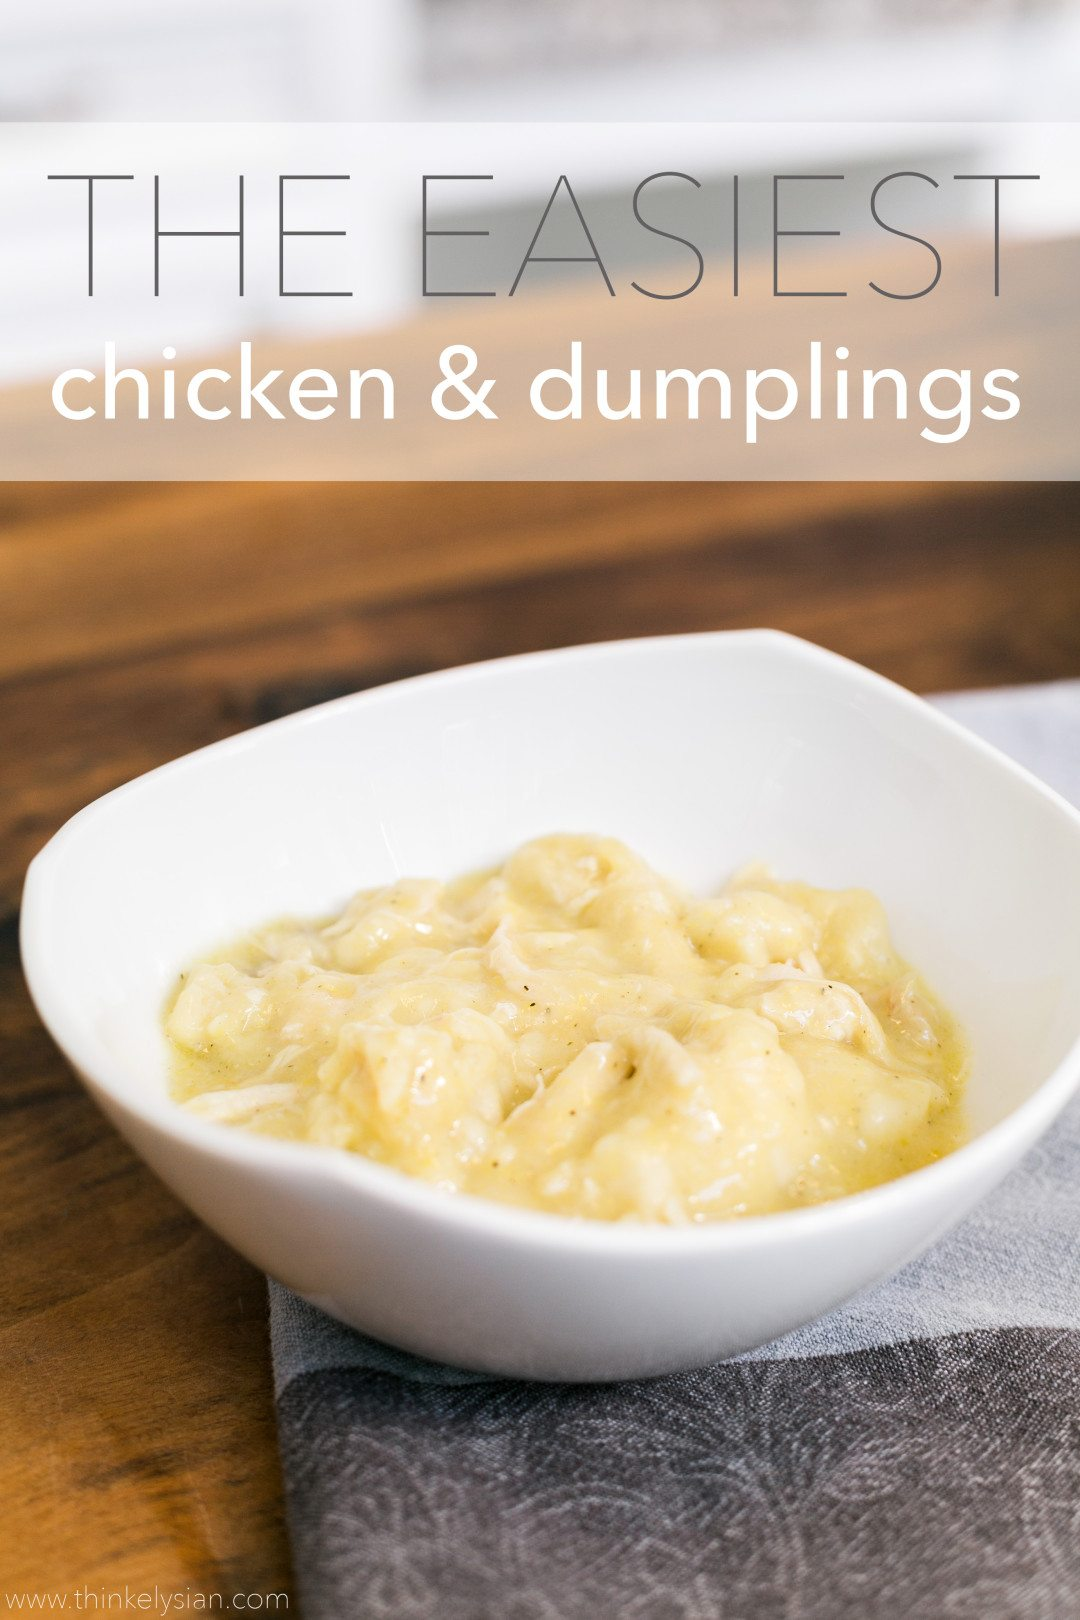 Easy Chicken and Dumplings Recipe // www.thinkelysian.com